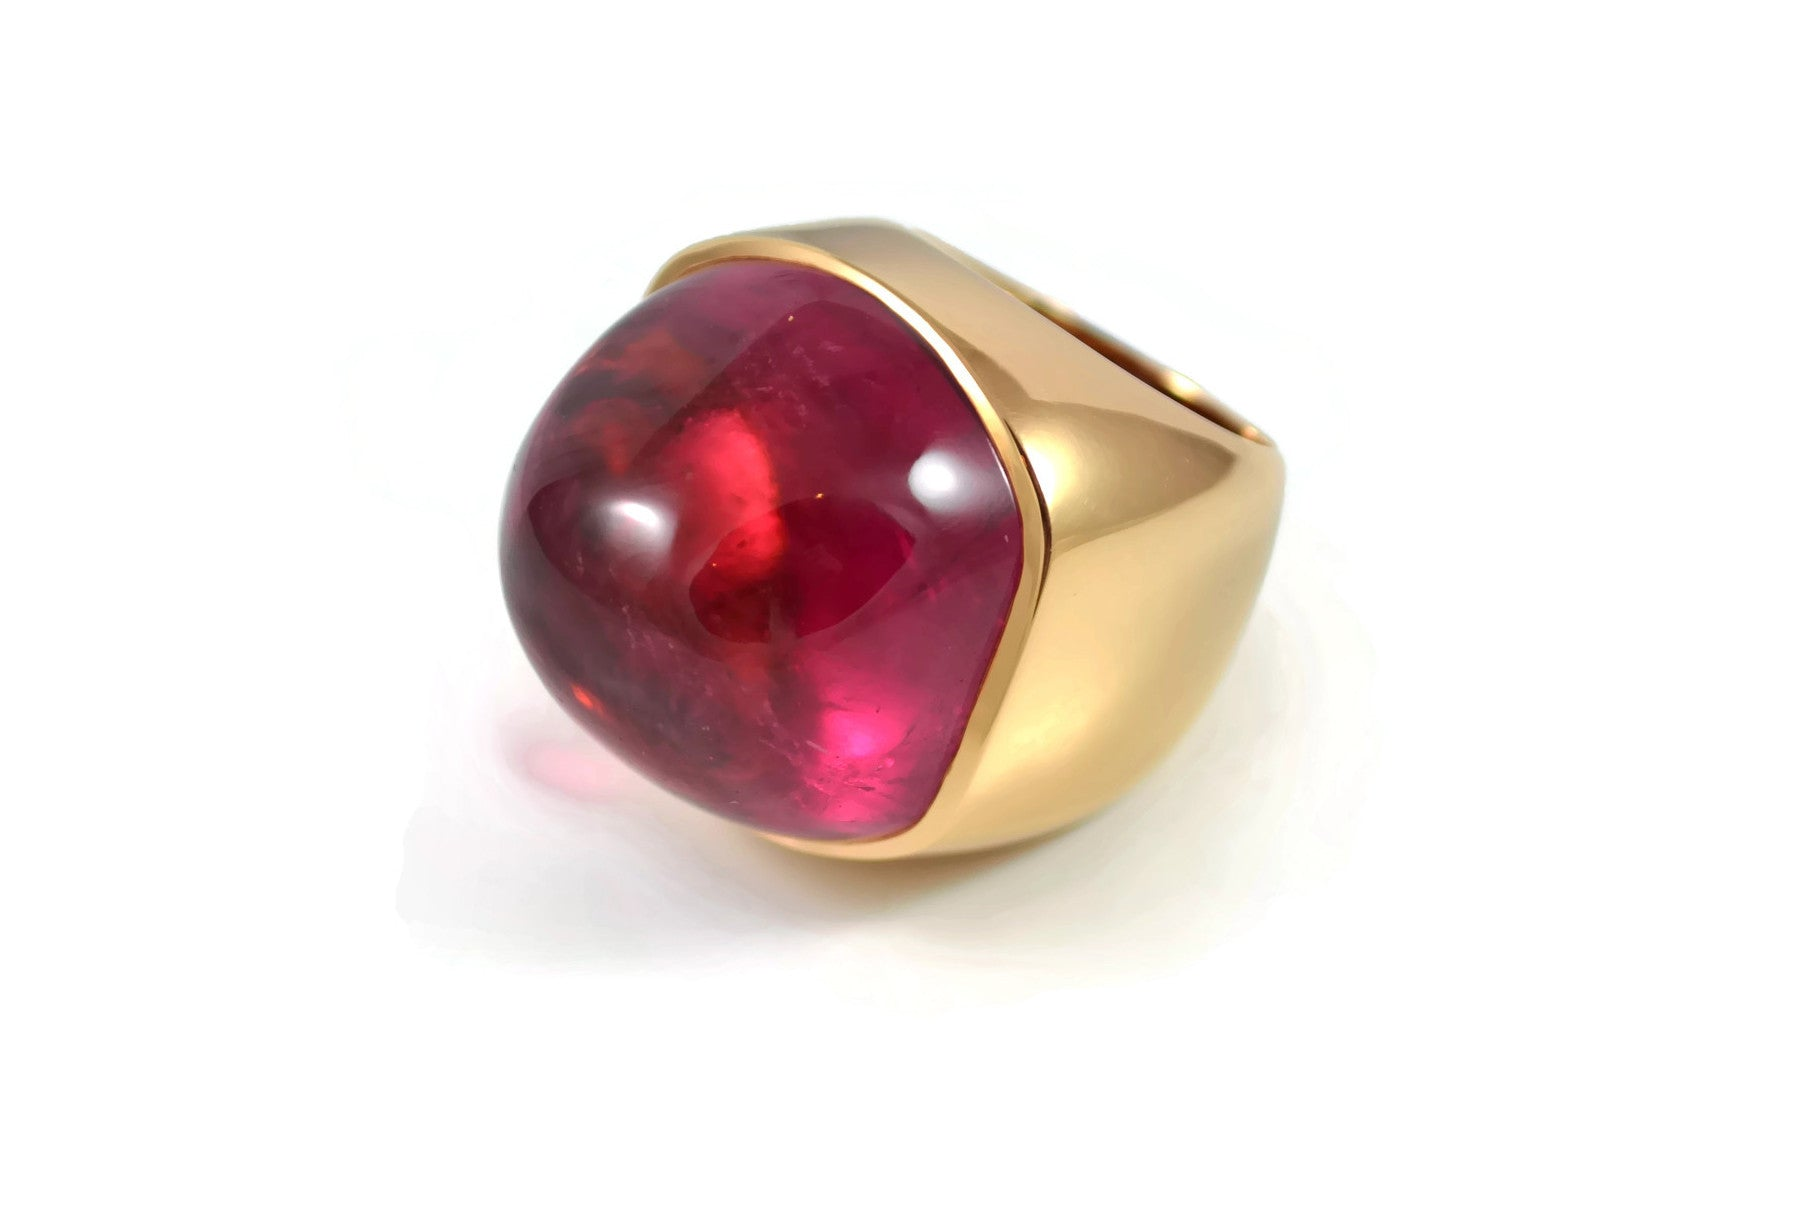 AF Collection One of a kind Ring with Large Cabochon Rubellite, 18k Rose Gold.